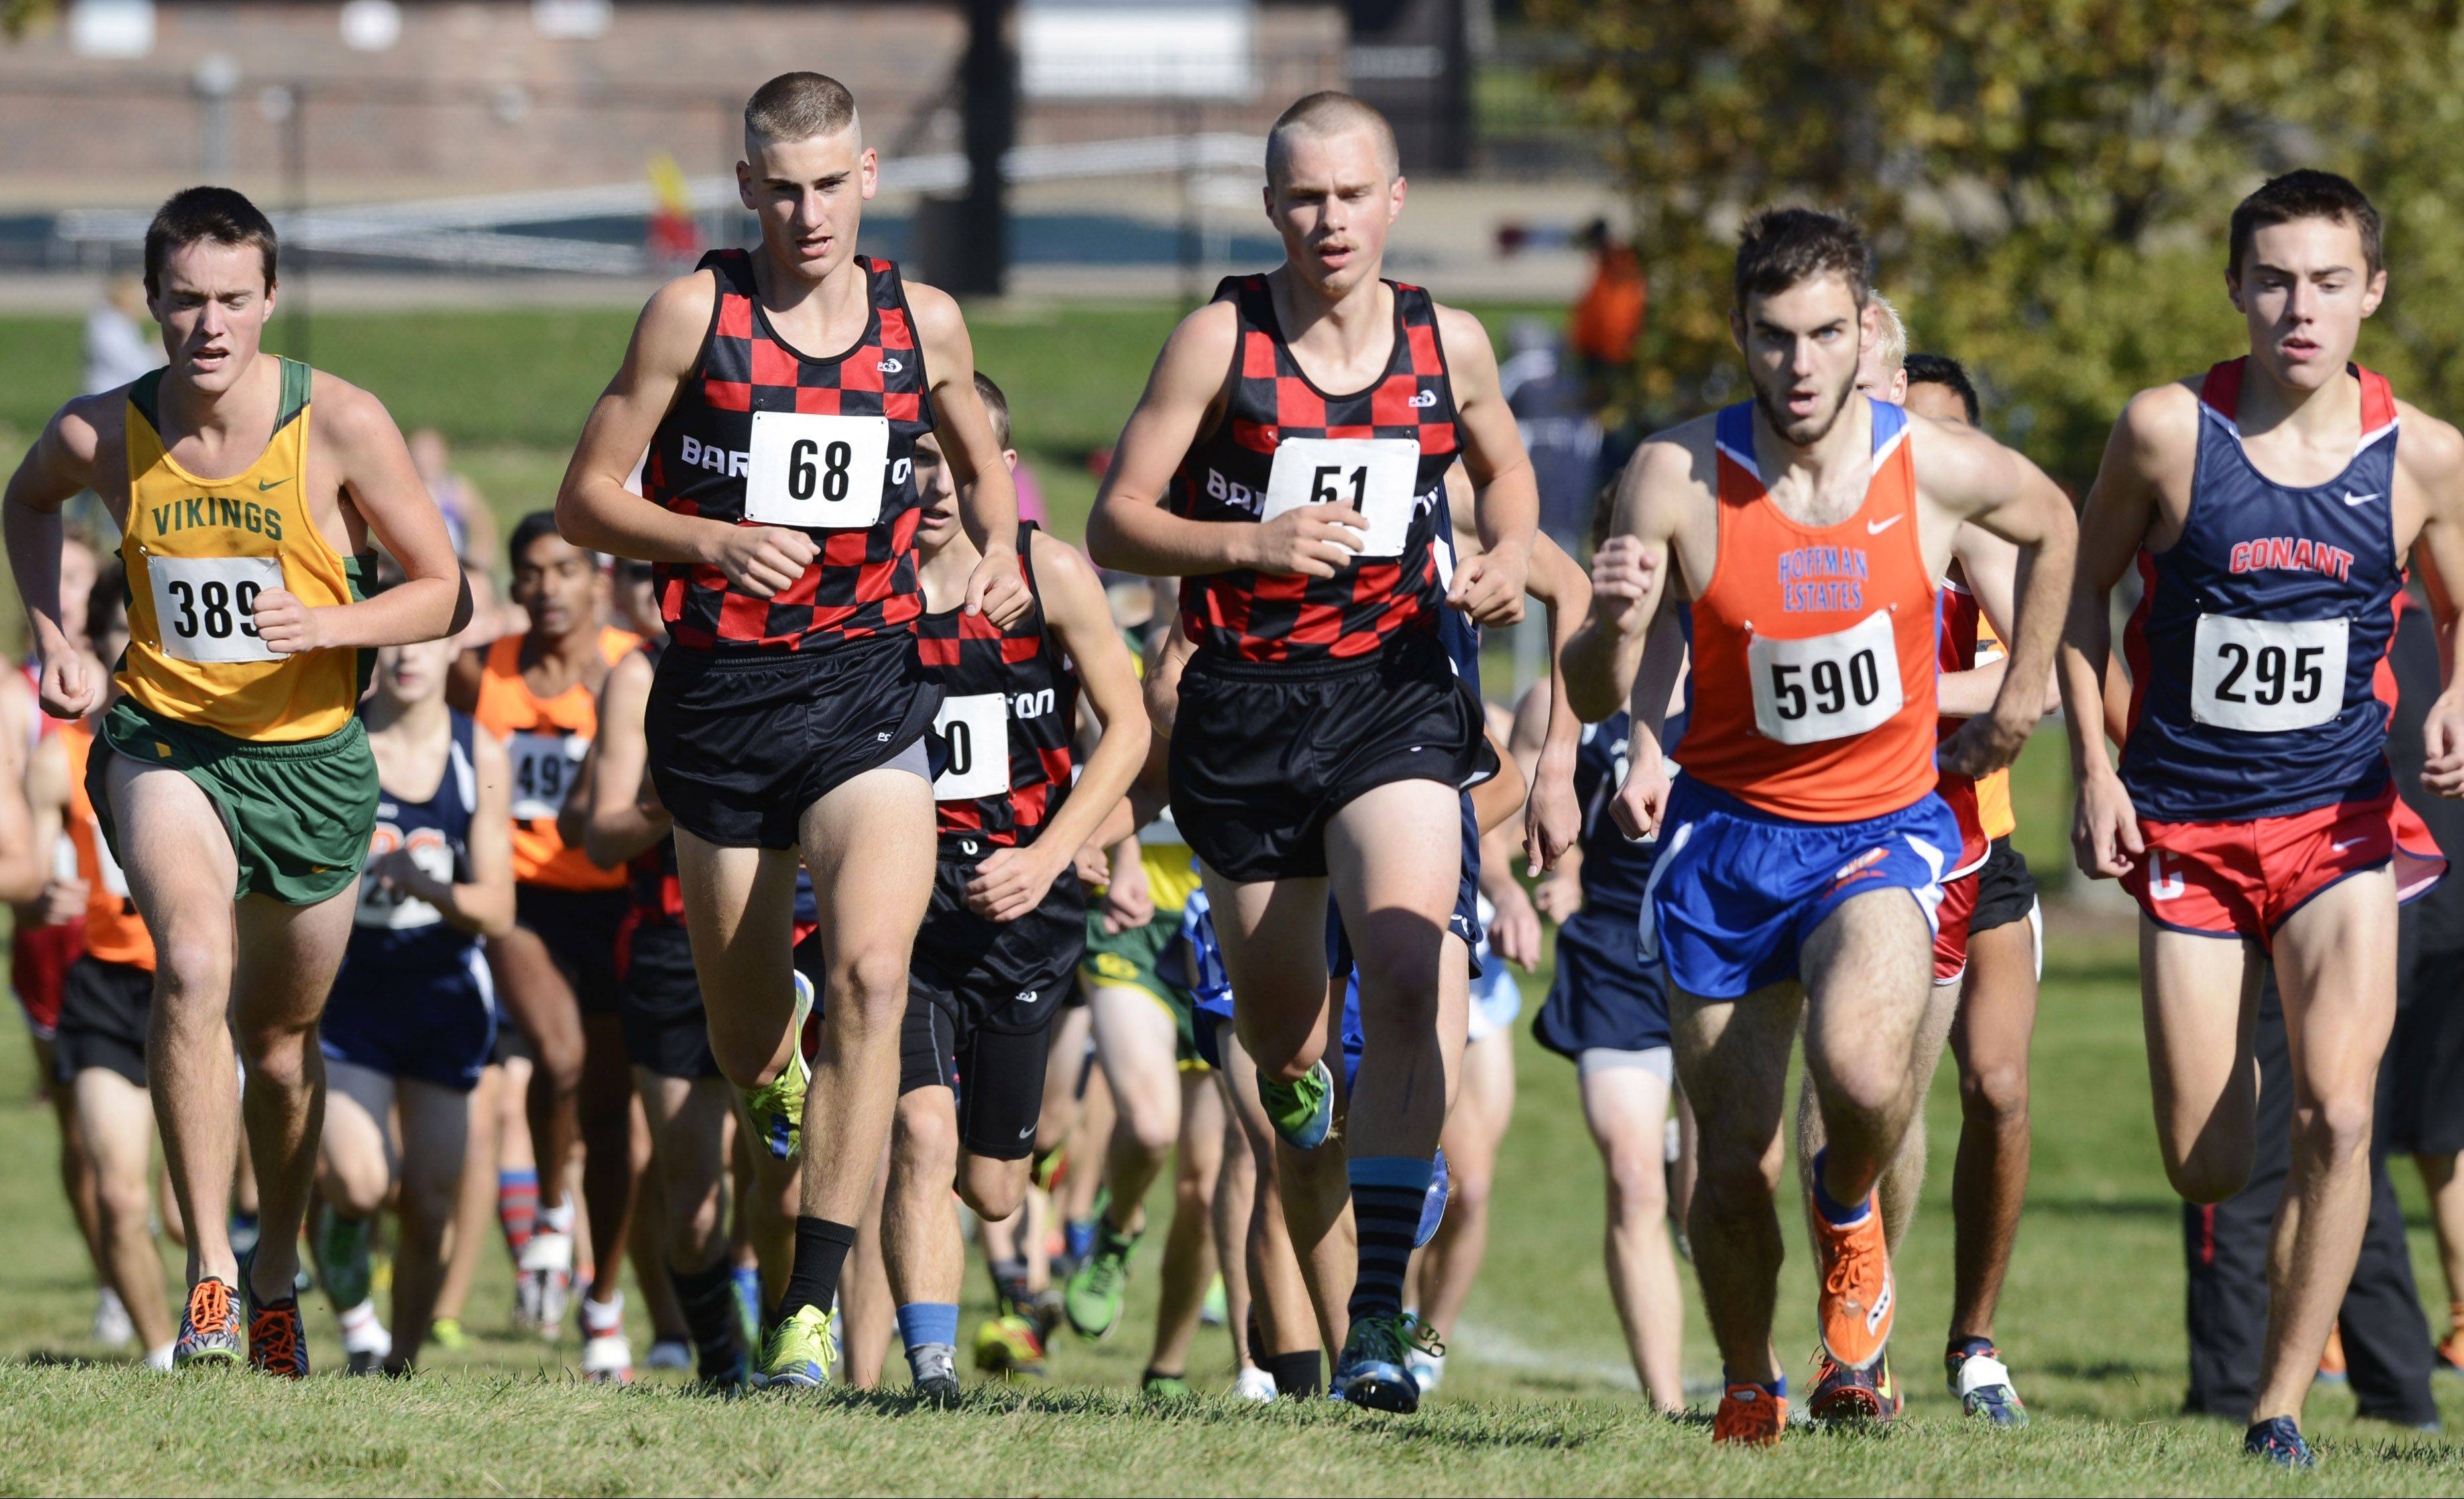 A strong cast of Mid-Suburban League runners including, from left, Fremd's Harry Winter, Barrington's Konrad Eiring and Jake Herb, Hoffman Estates' Billy Thomas and Conant's Zach Dale compete during the MSL meet.